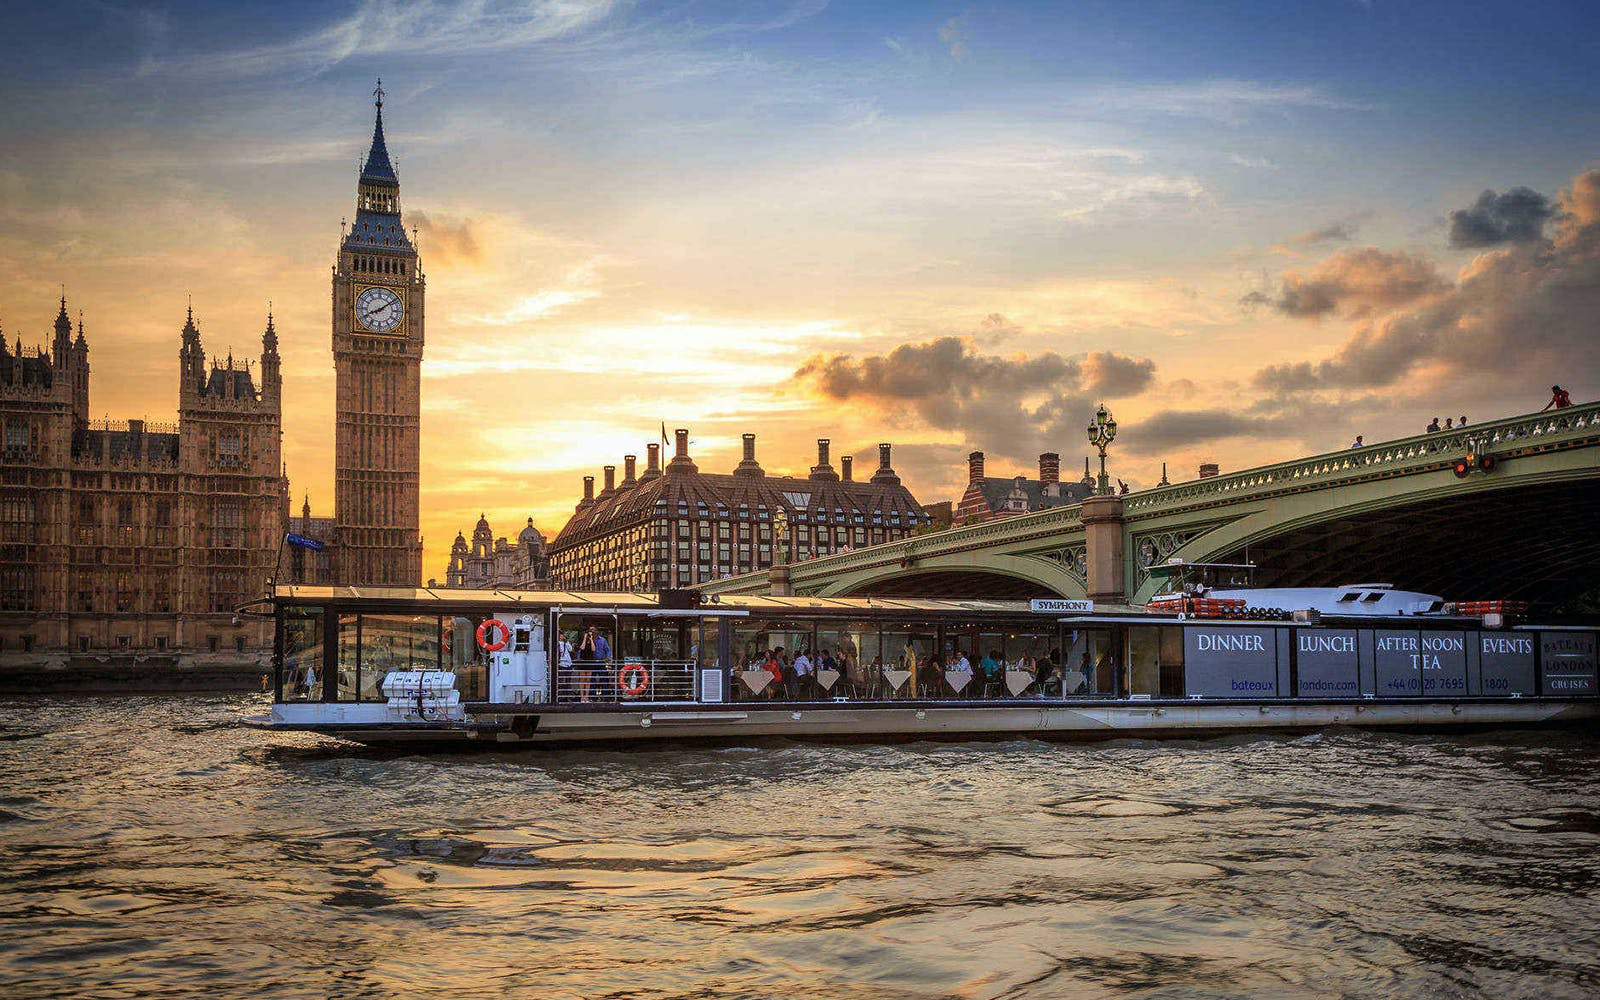 Bateaux London: Afternoon Tea Cruise